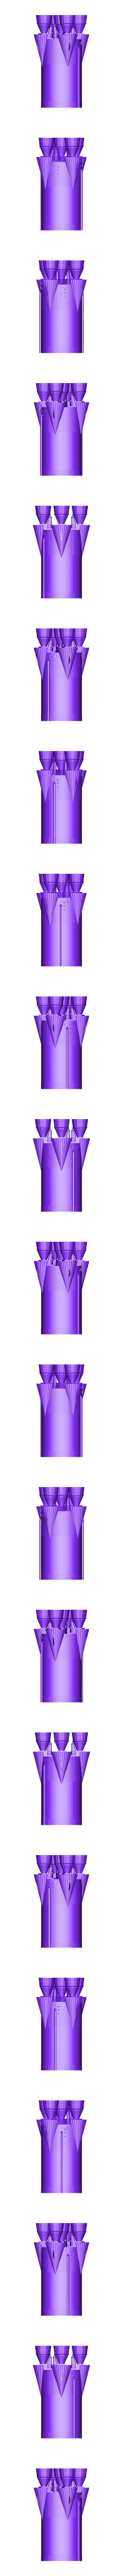 S-IC bottom.stl Download free STL file Saturn V Rocket • 3D printable model, spac3D